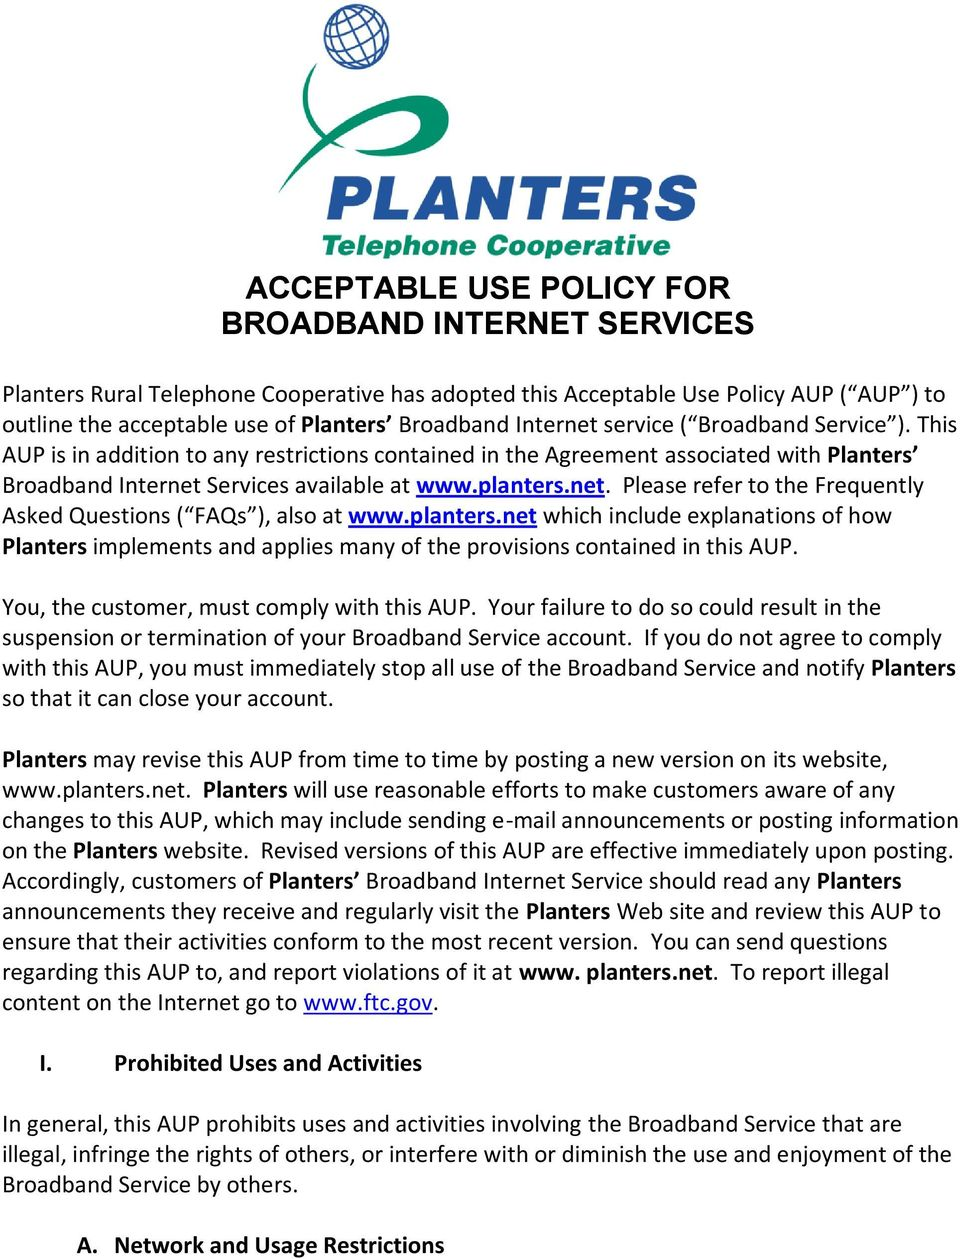 planters.net which include explanations of how Planters implements and applies many of the provisions contained in this AUP. You, the customer, must comply with this AUP.